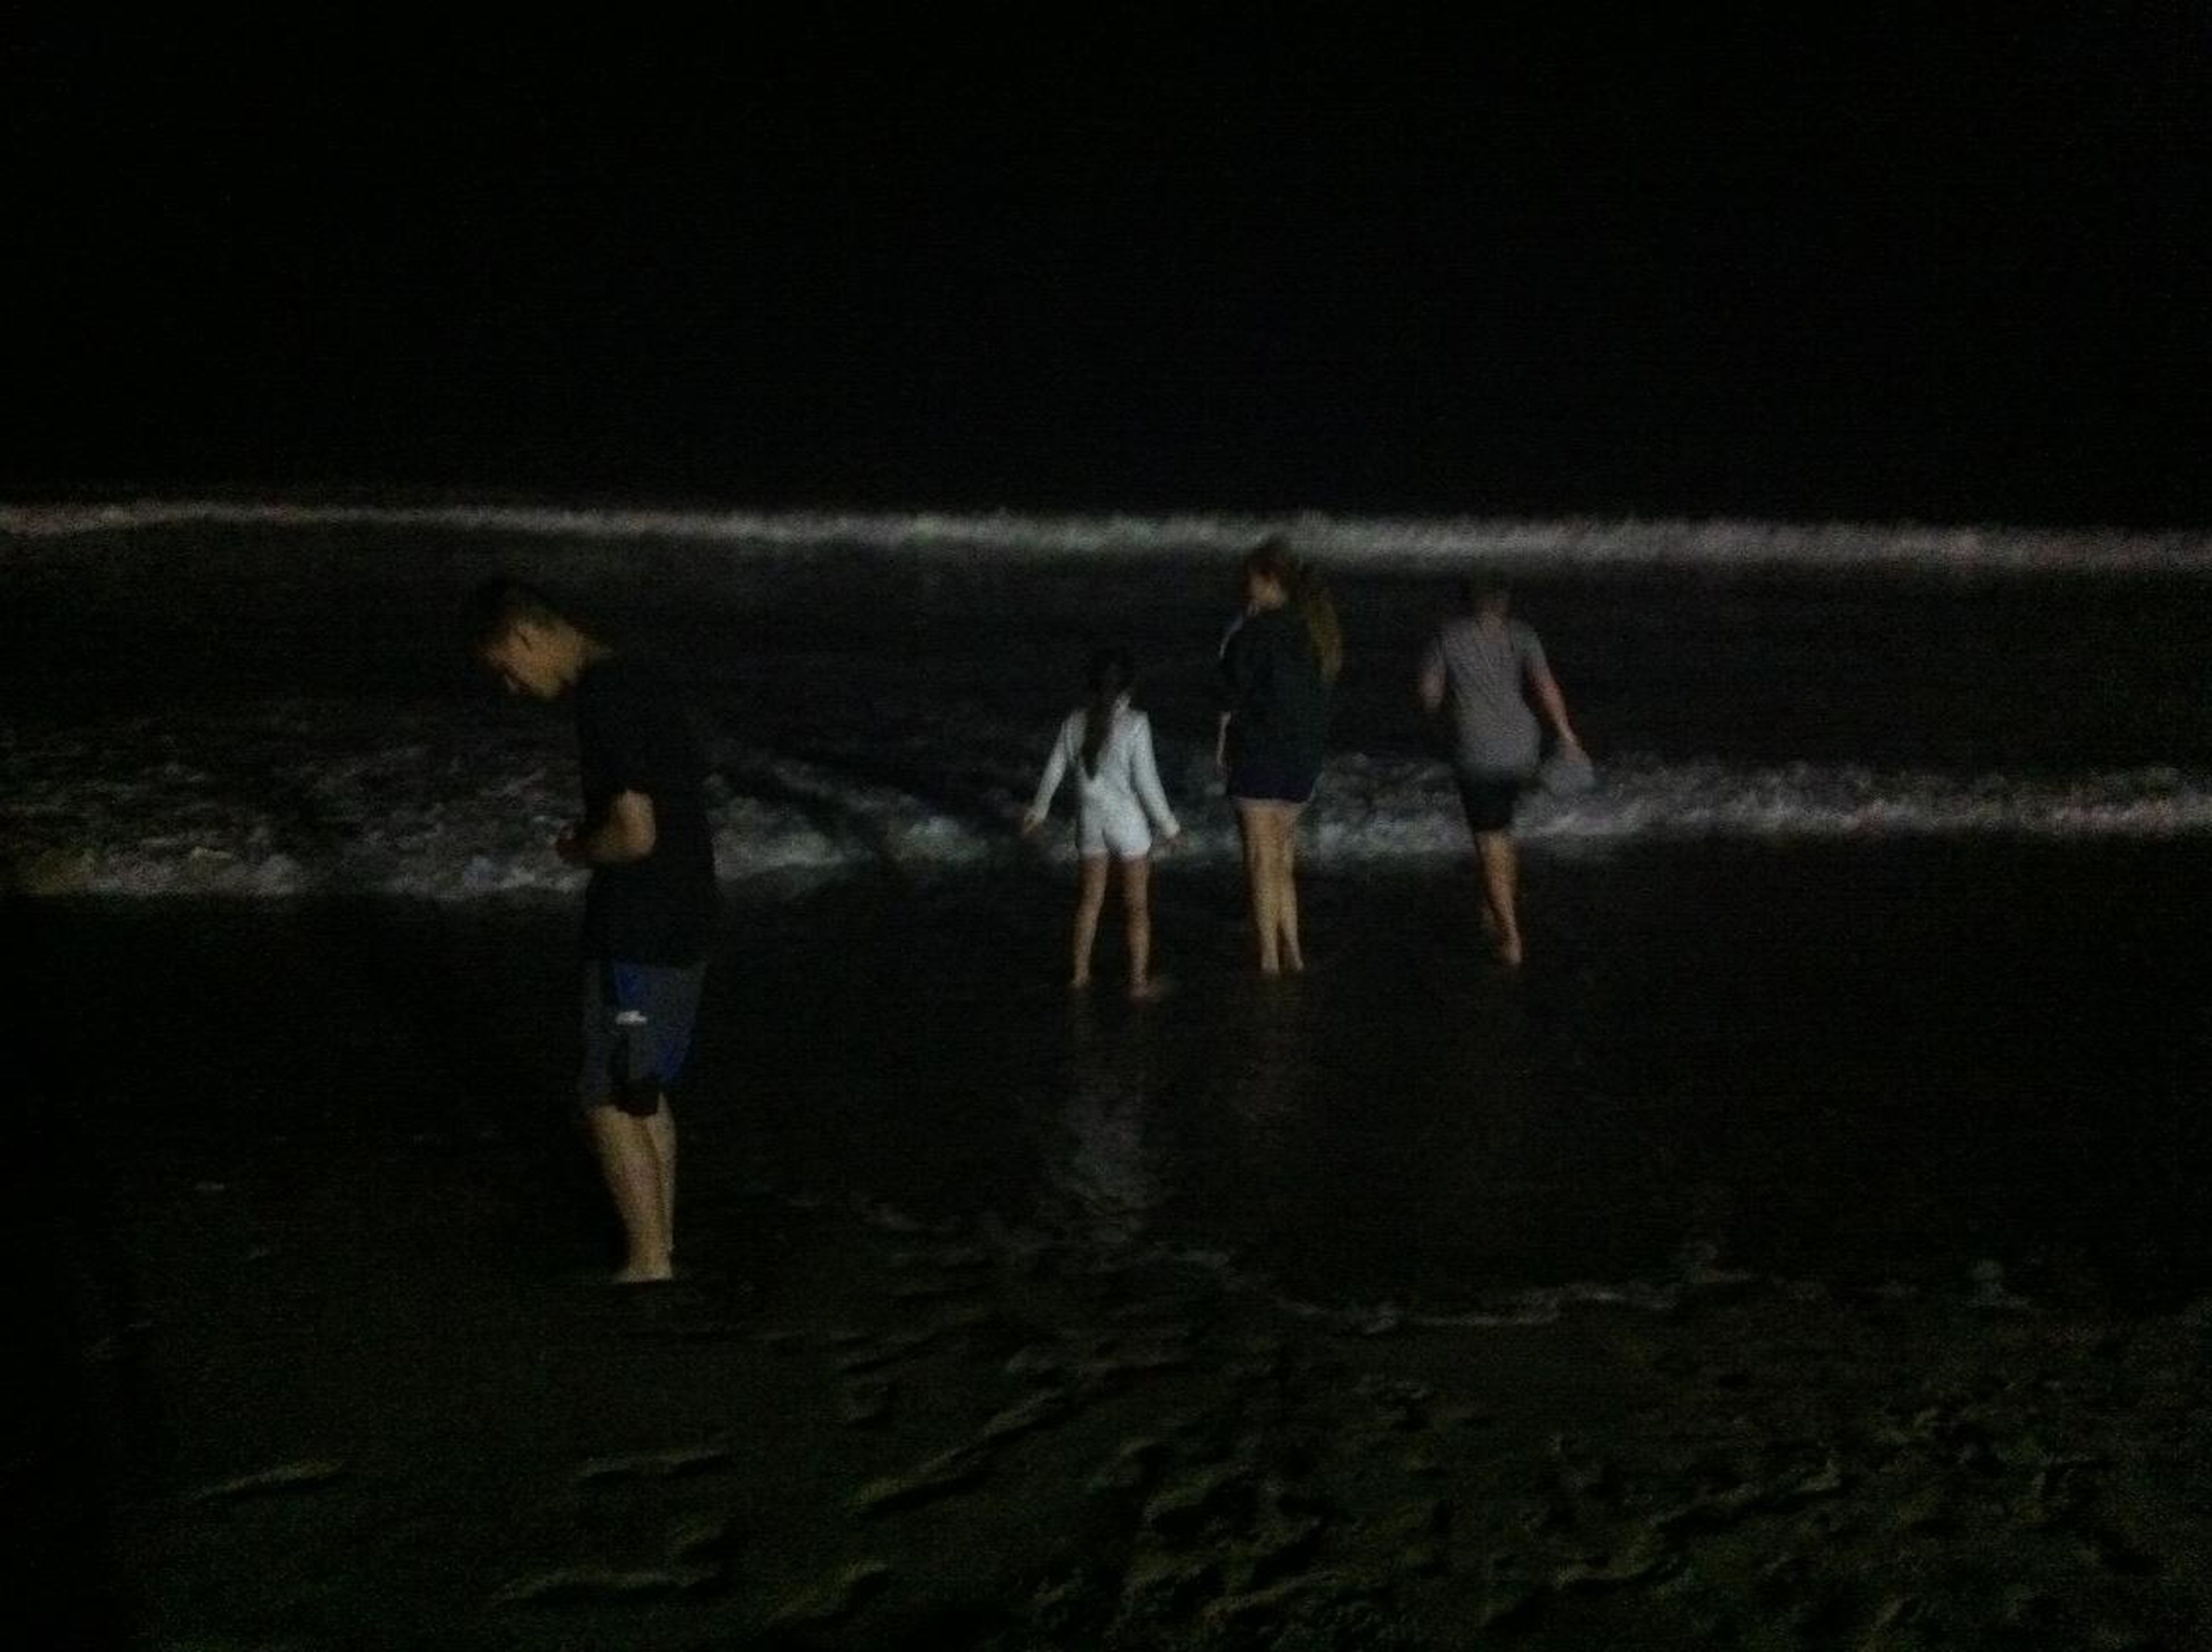 water, lifestyles, men, full length, rear view, leisure activity, person, sea, standing, walking, beach, night, casual clothing, togetherness, outdoors, shore